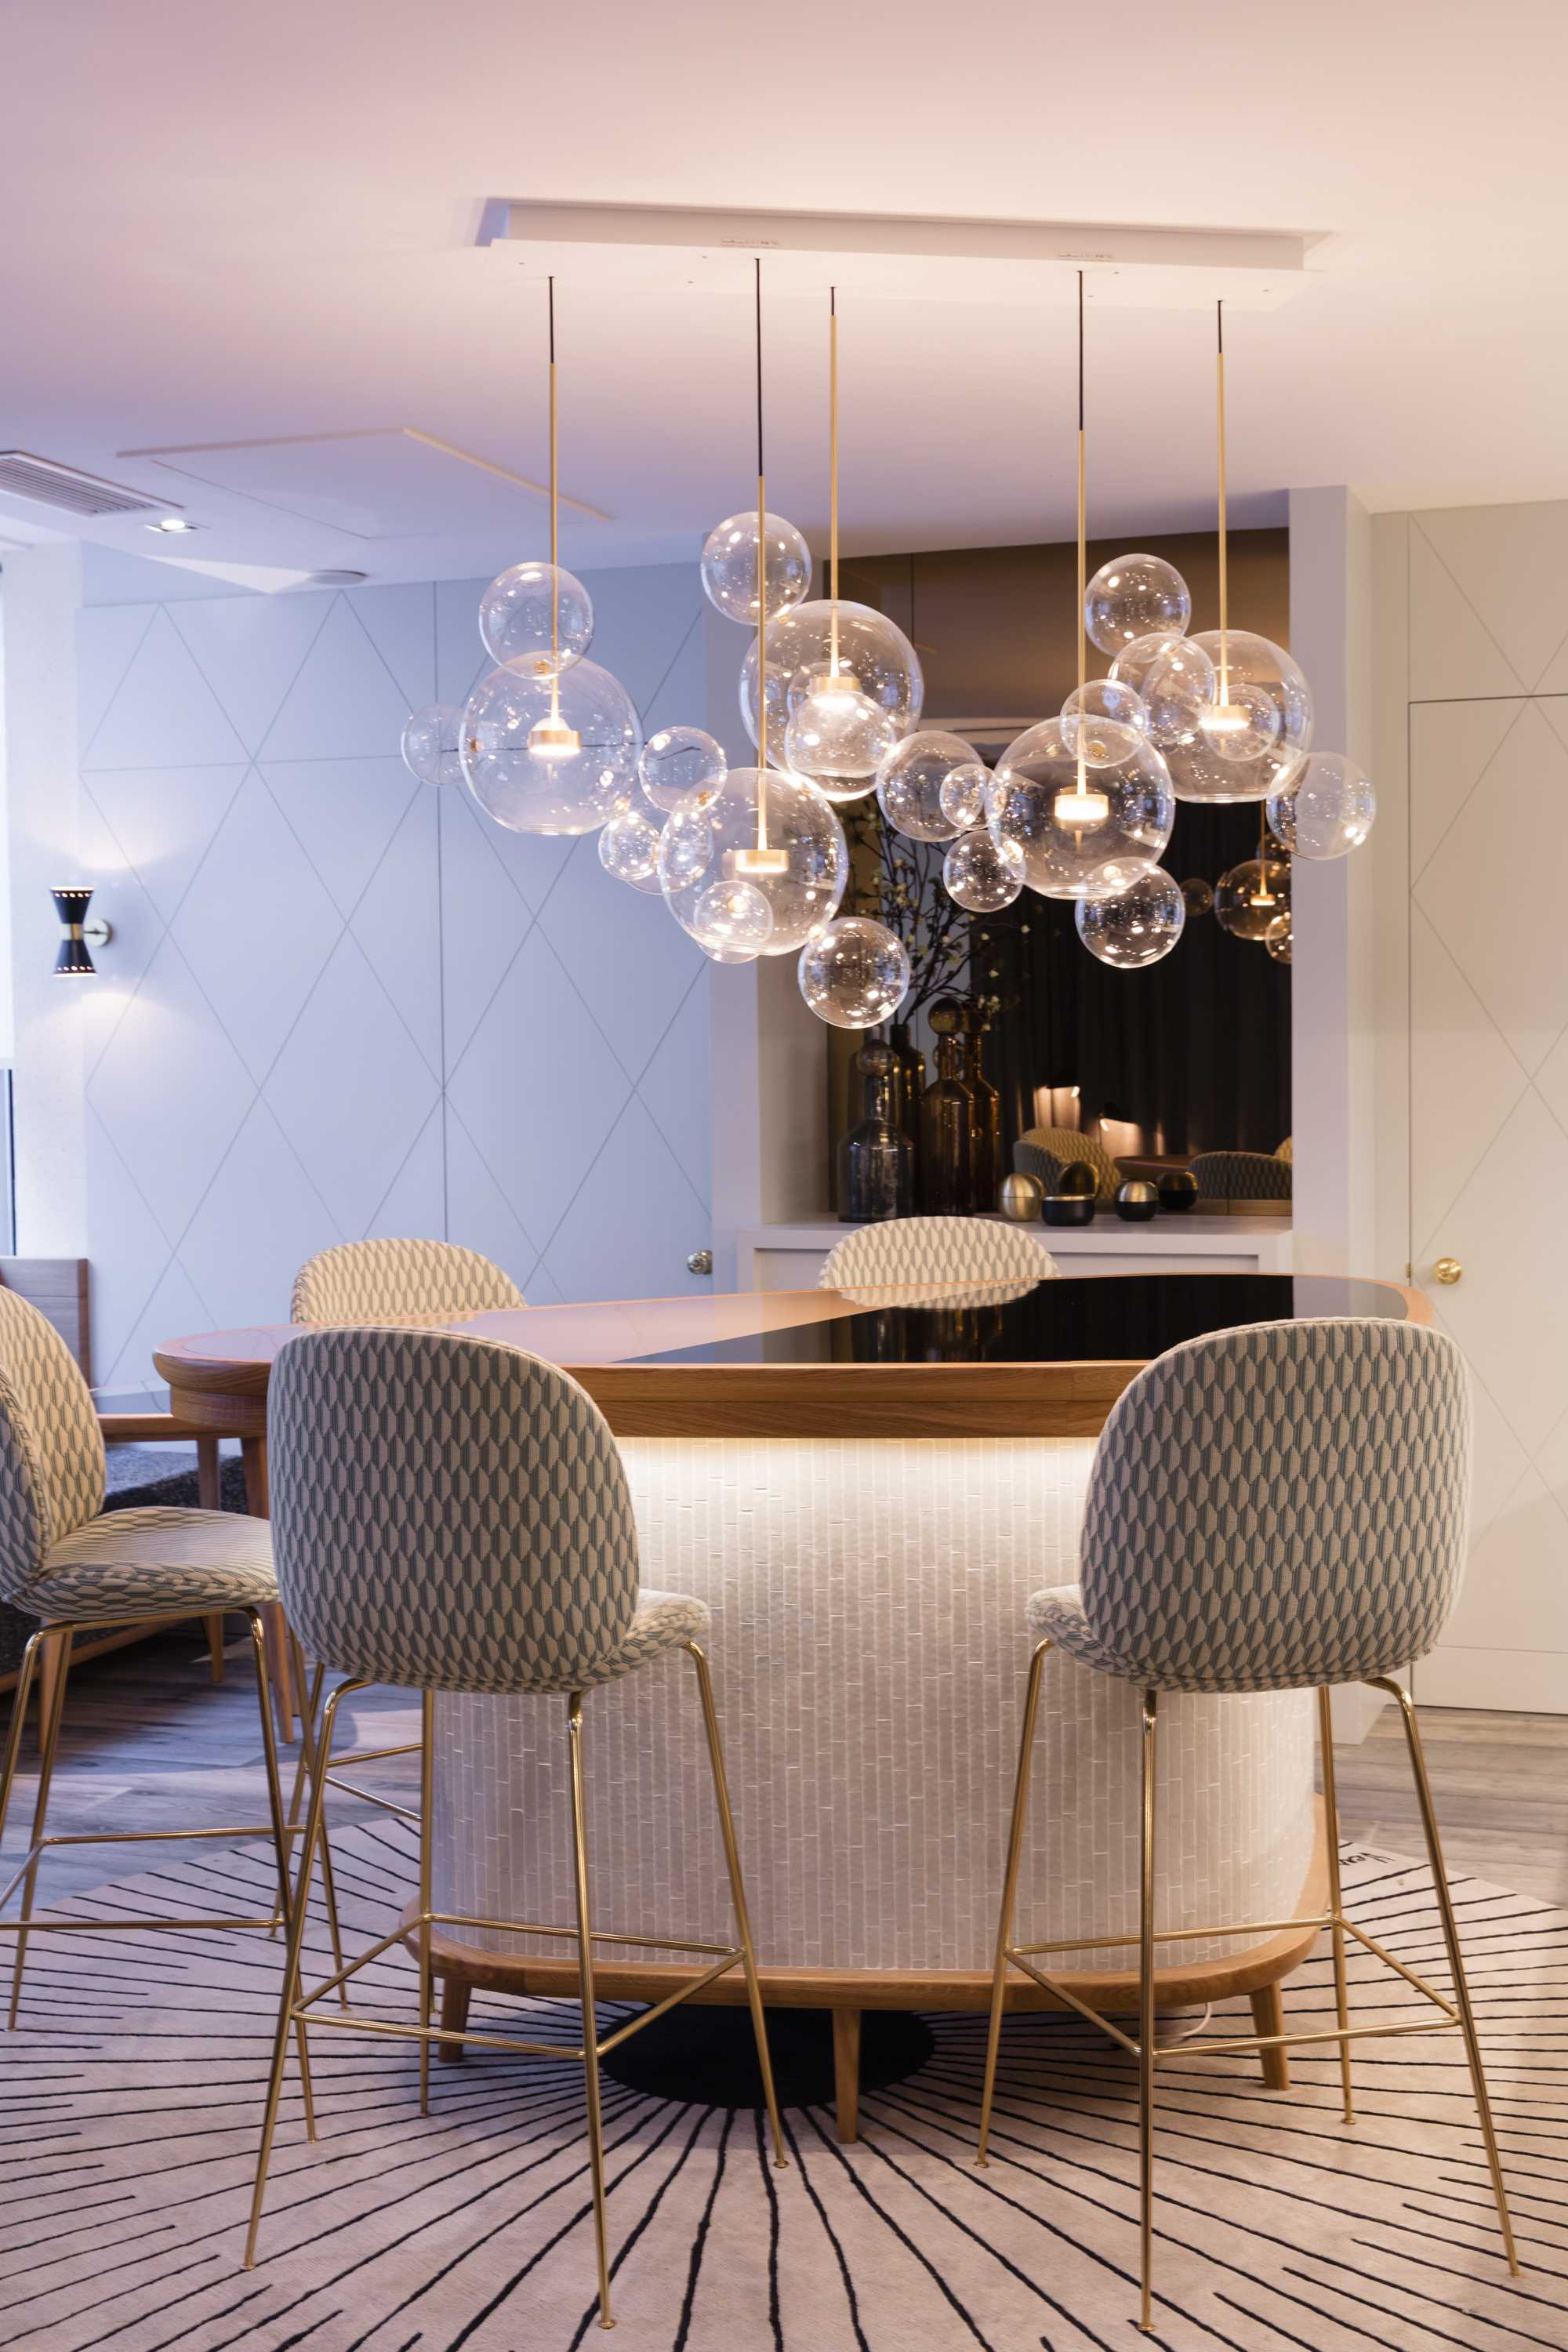 Giopato_Coombes_Bolle_Zigzag_Chandelier_24_Bubbles_Set_Ph_ArnaudFevrier.jpg